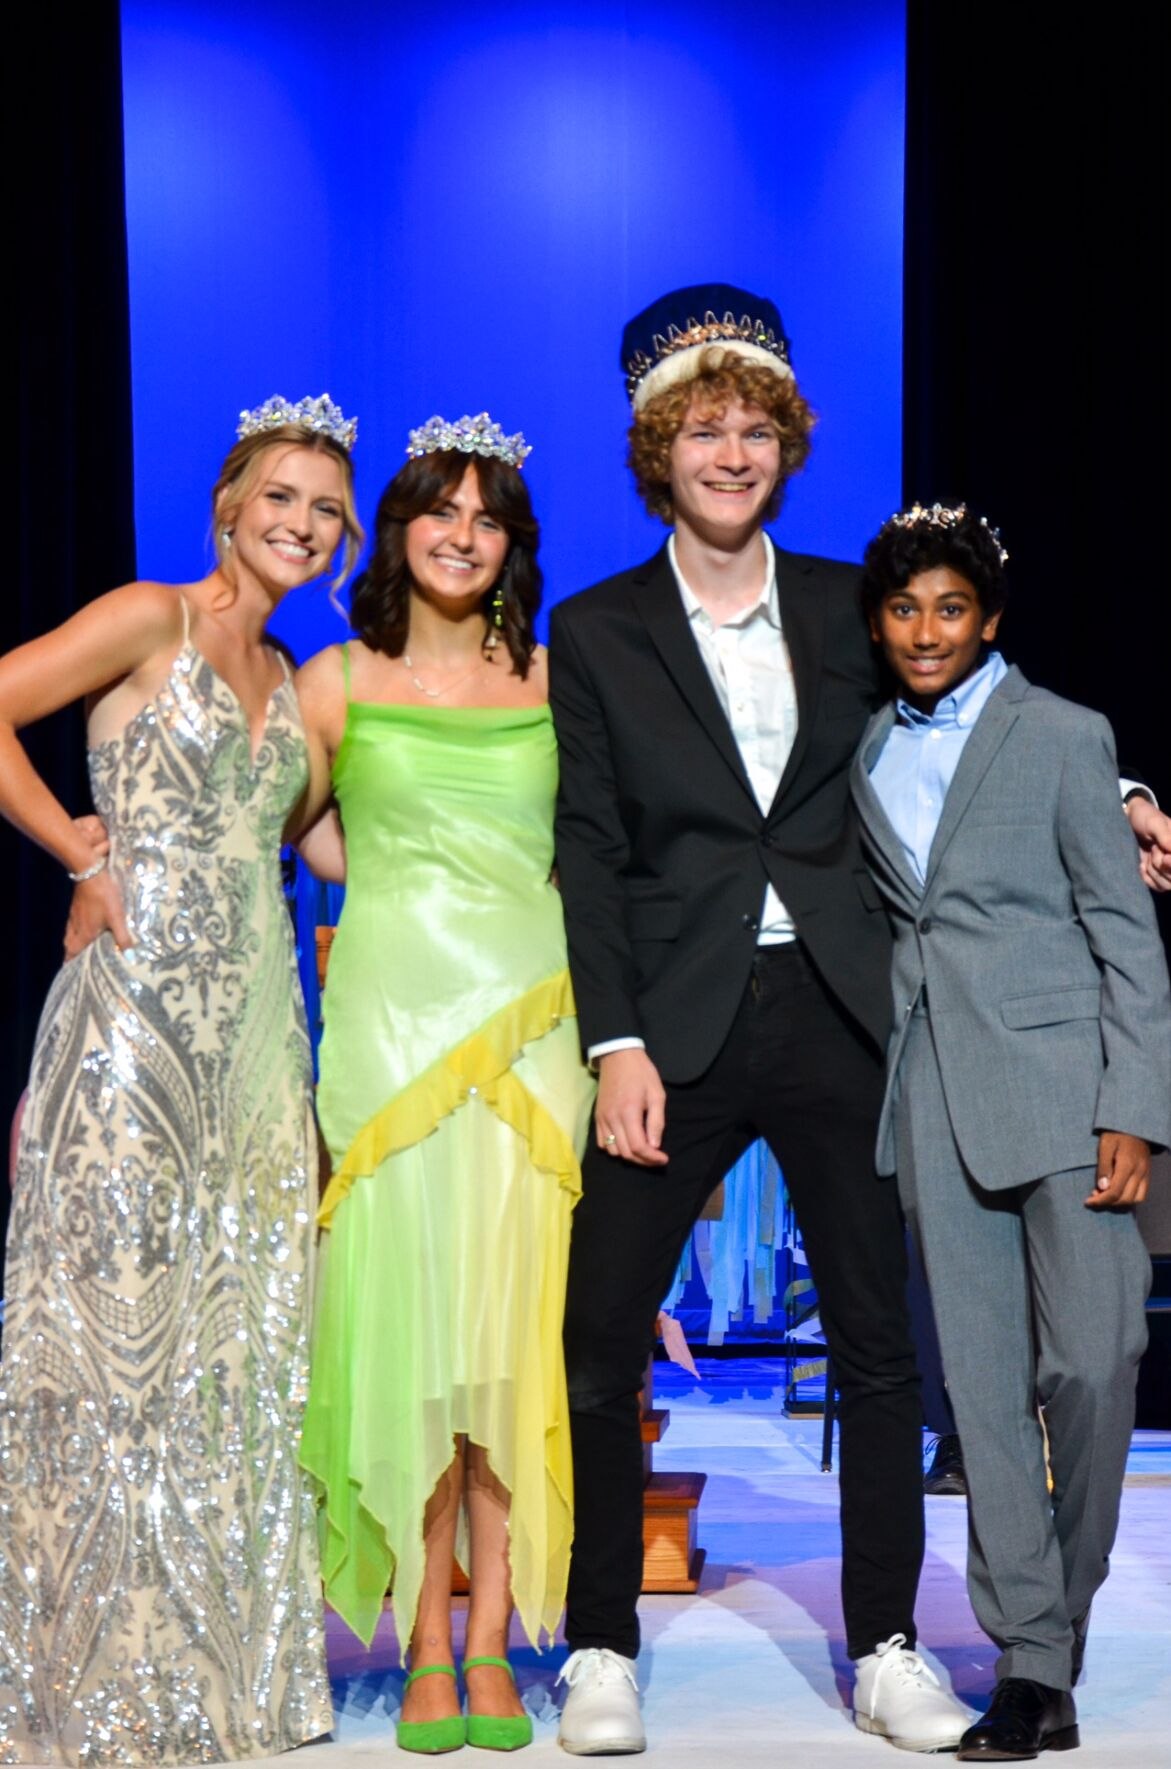 PLHS Homecoming Royalty